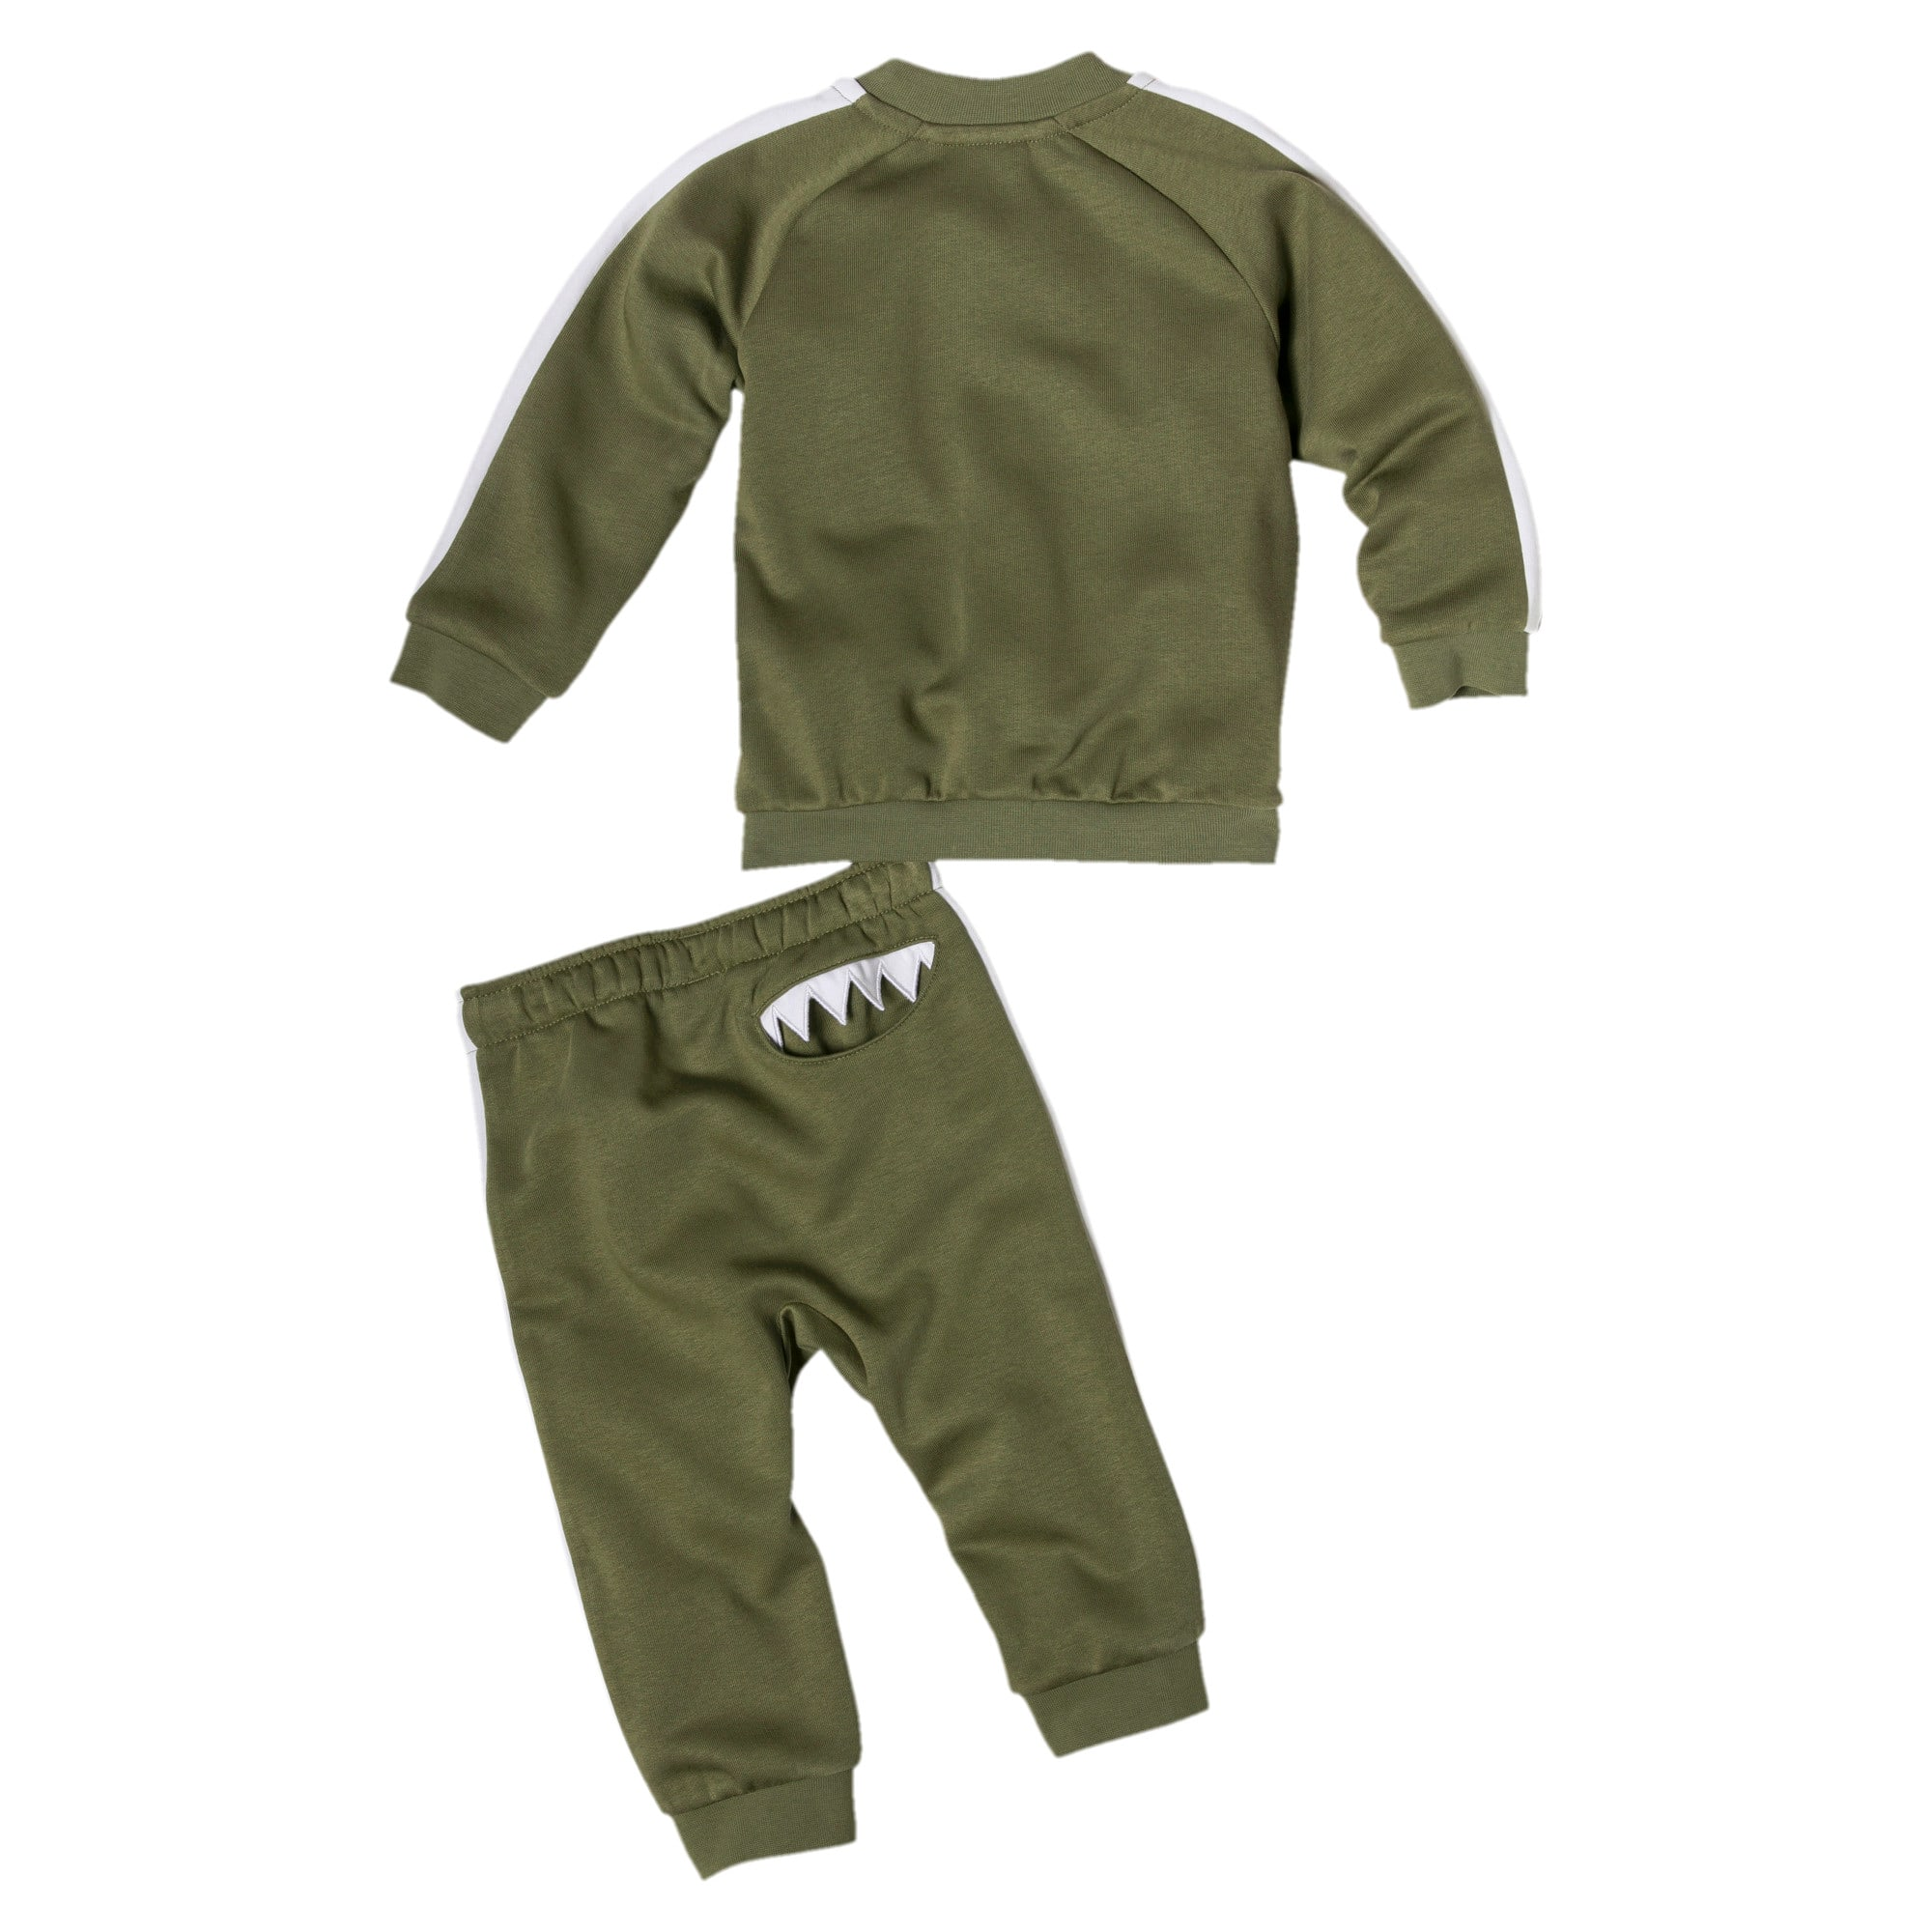 Thumbnail 2 of Infant + Toddler Monster Set, Olivine, medium